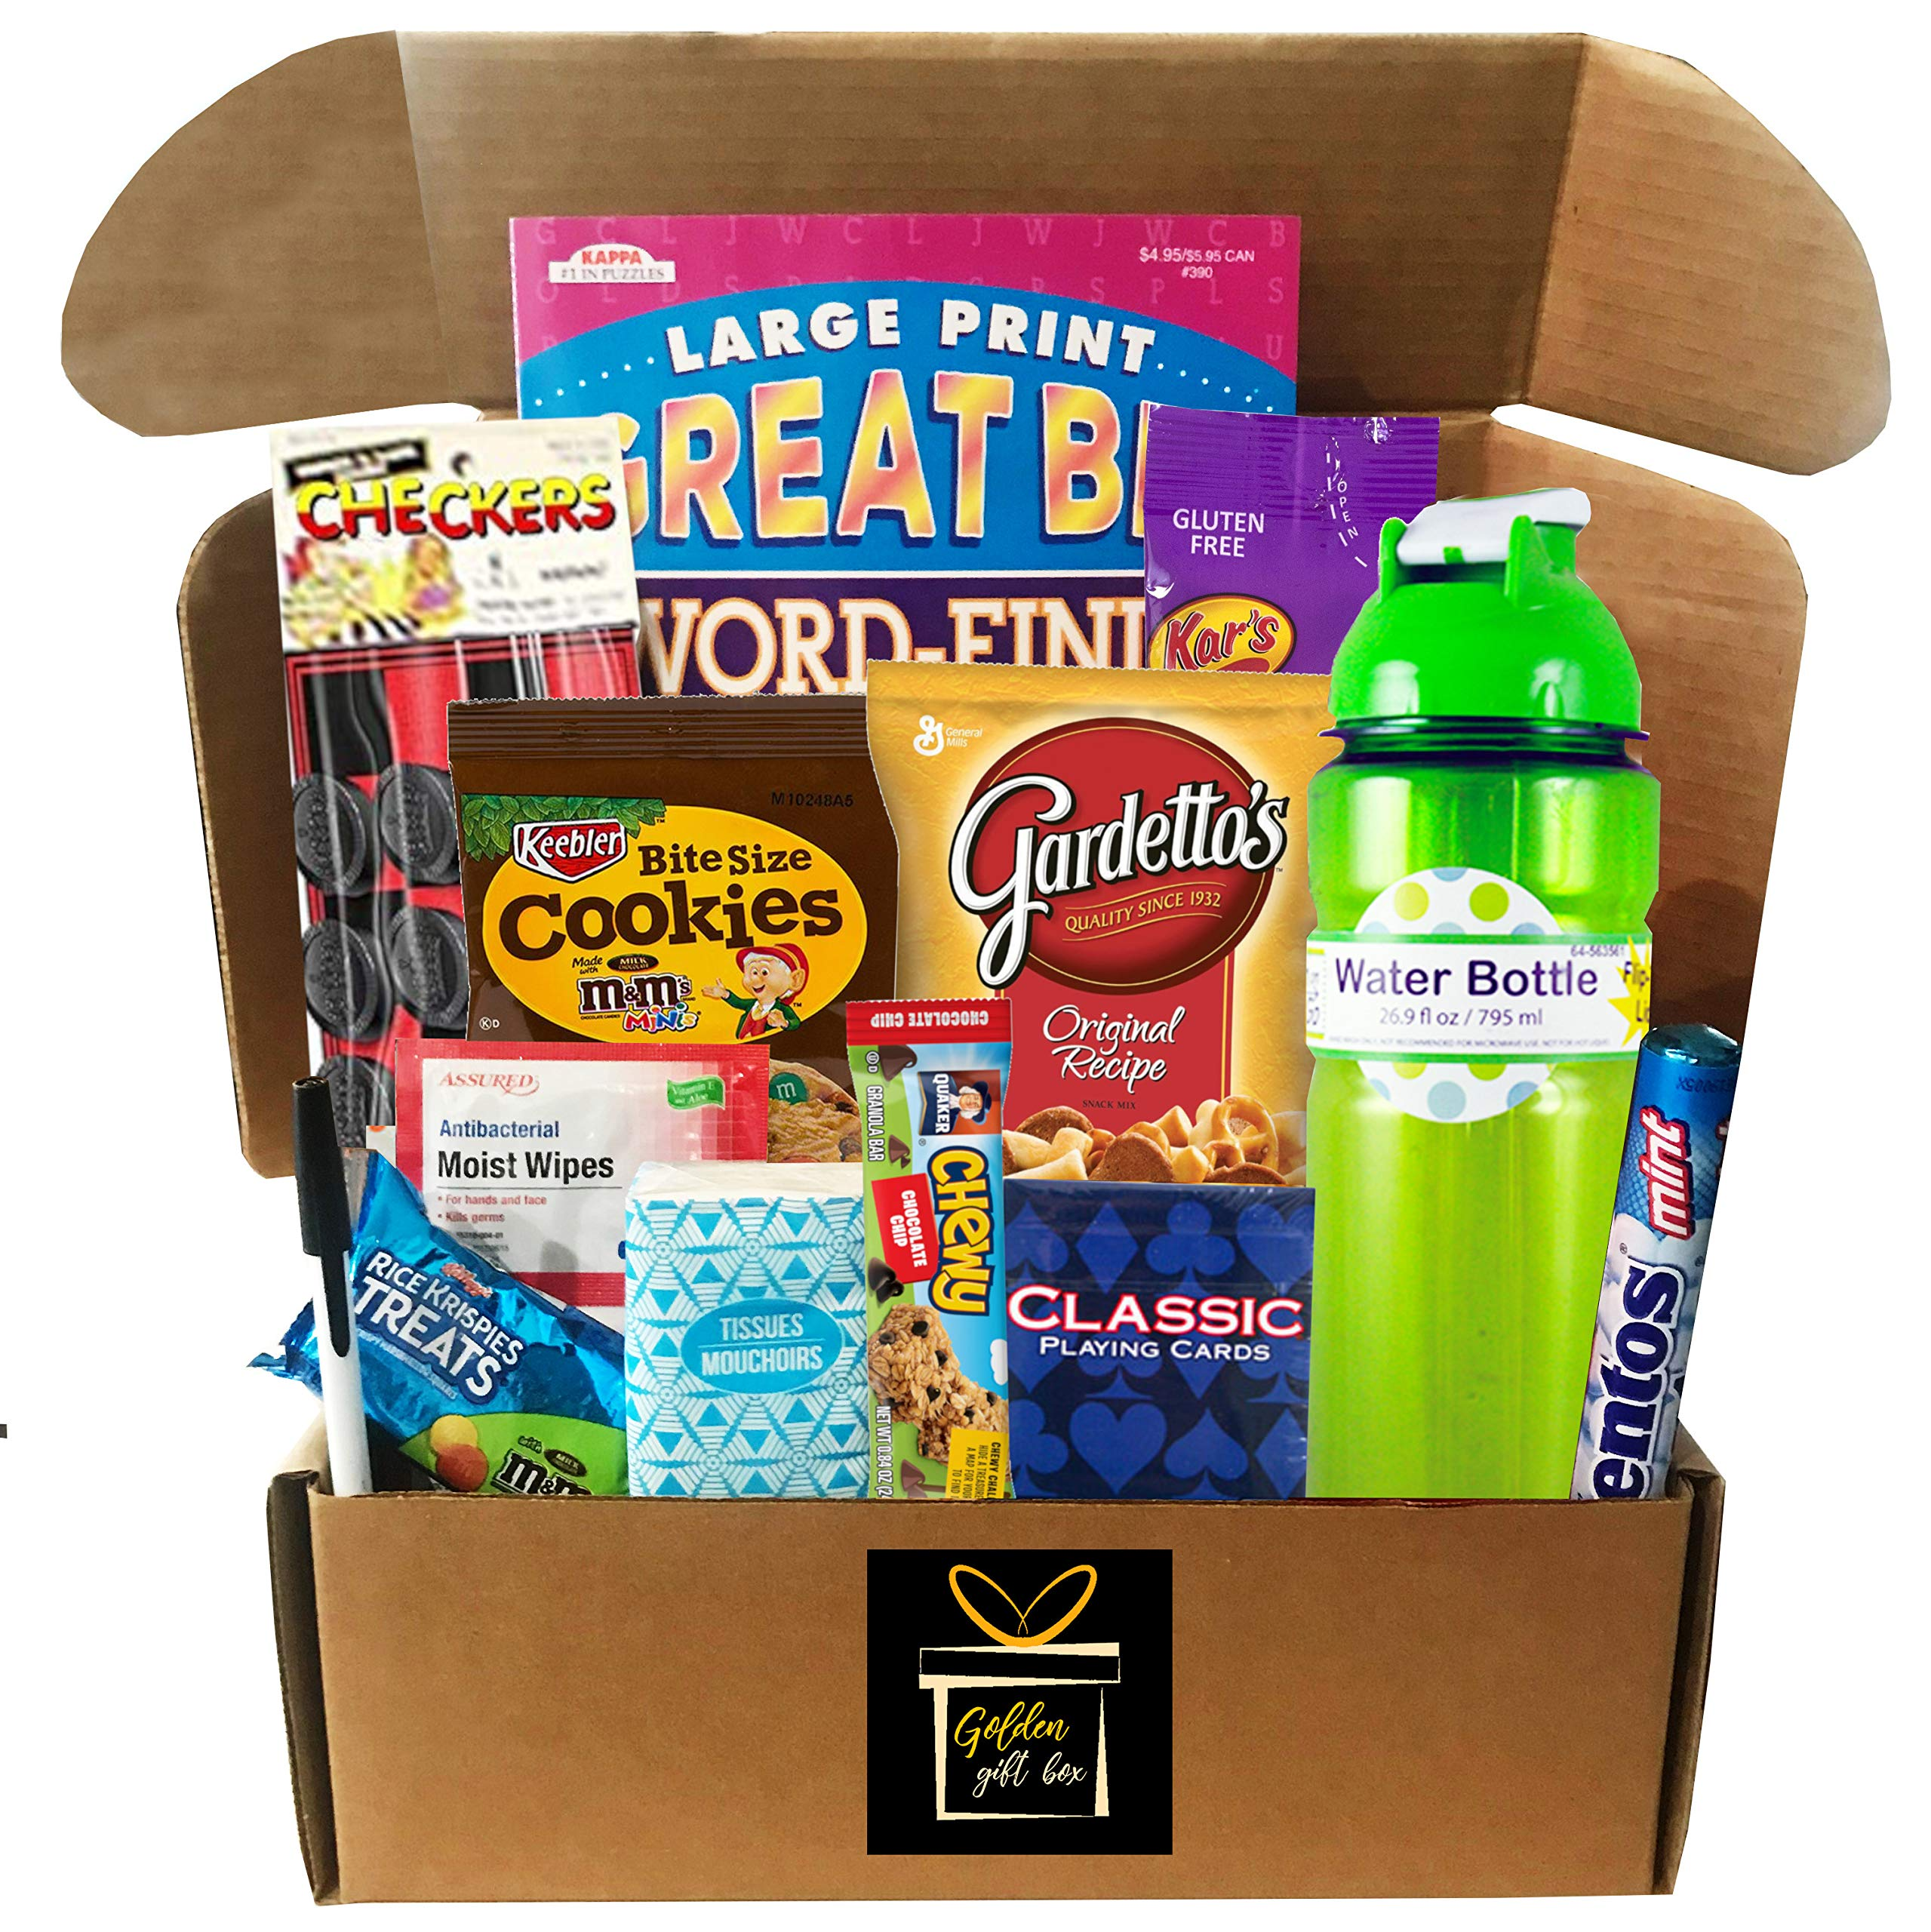 Get Well, Get Well Soon, Get Well Soon Gift, Feel Better, Feel Better Soon, Care Package - Several to Choose From - (Feel Better Soon - For a Person Recovering From Surgery or an Injury) by Golden Gift Box